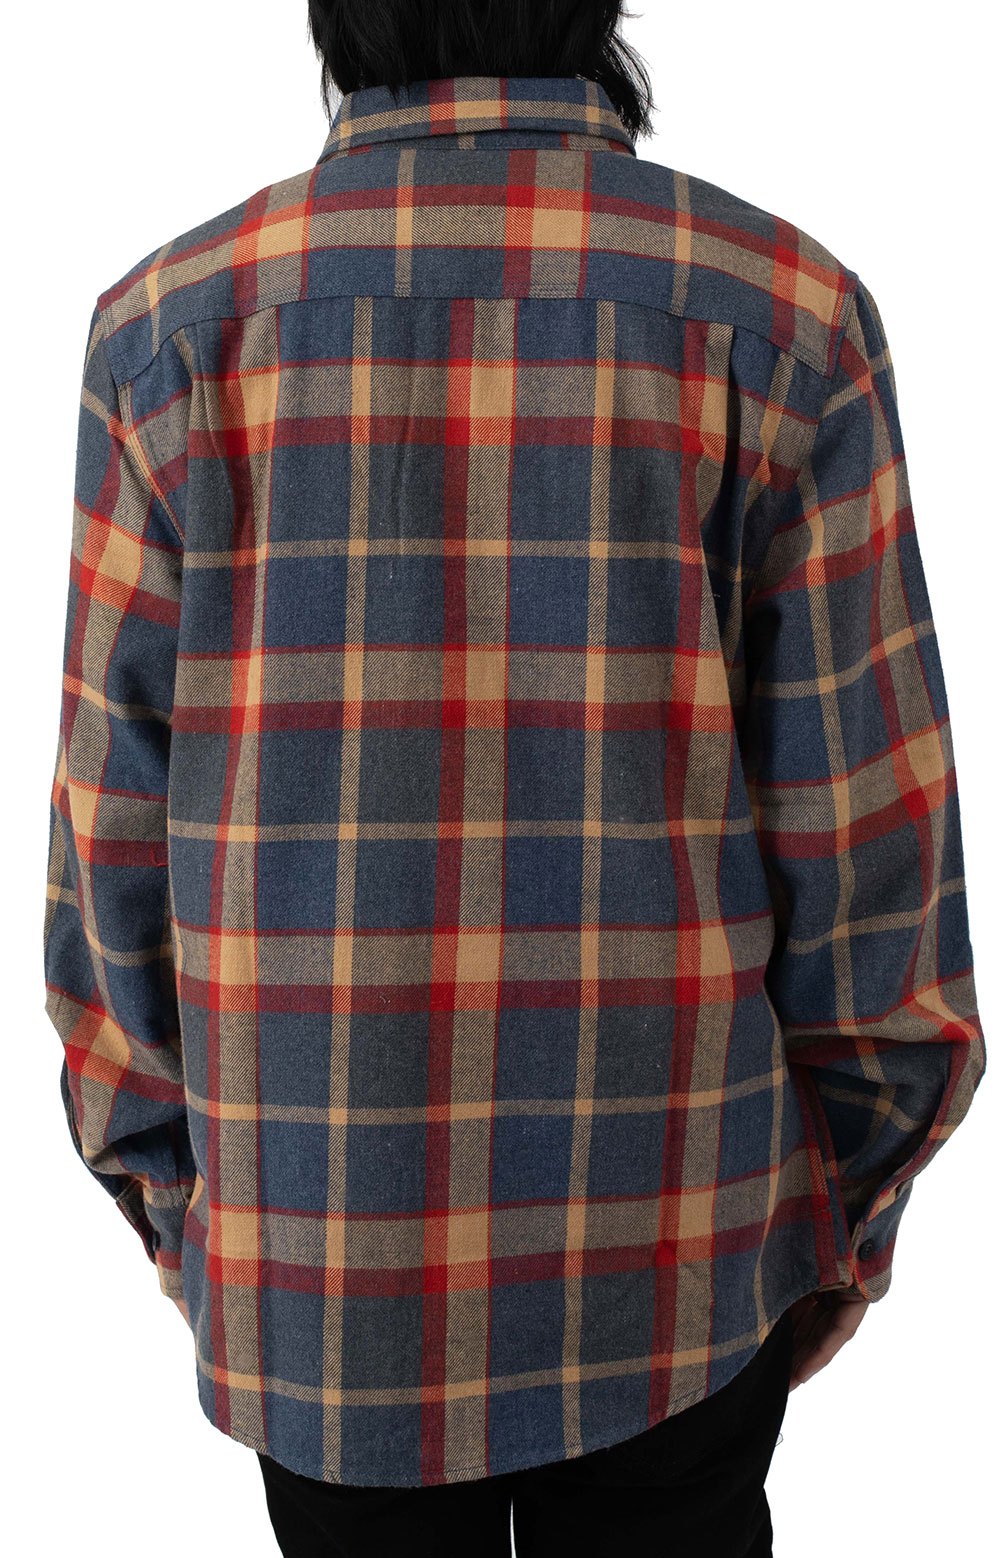 Bowery L/S Flannel - Blue/Red 3